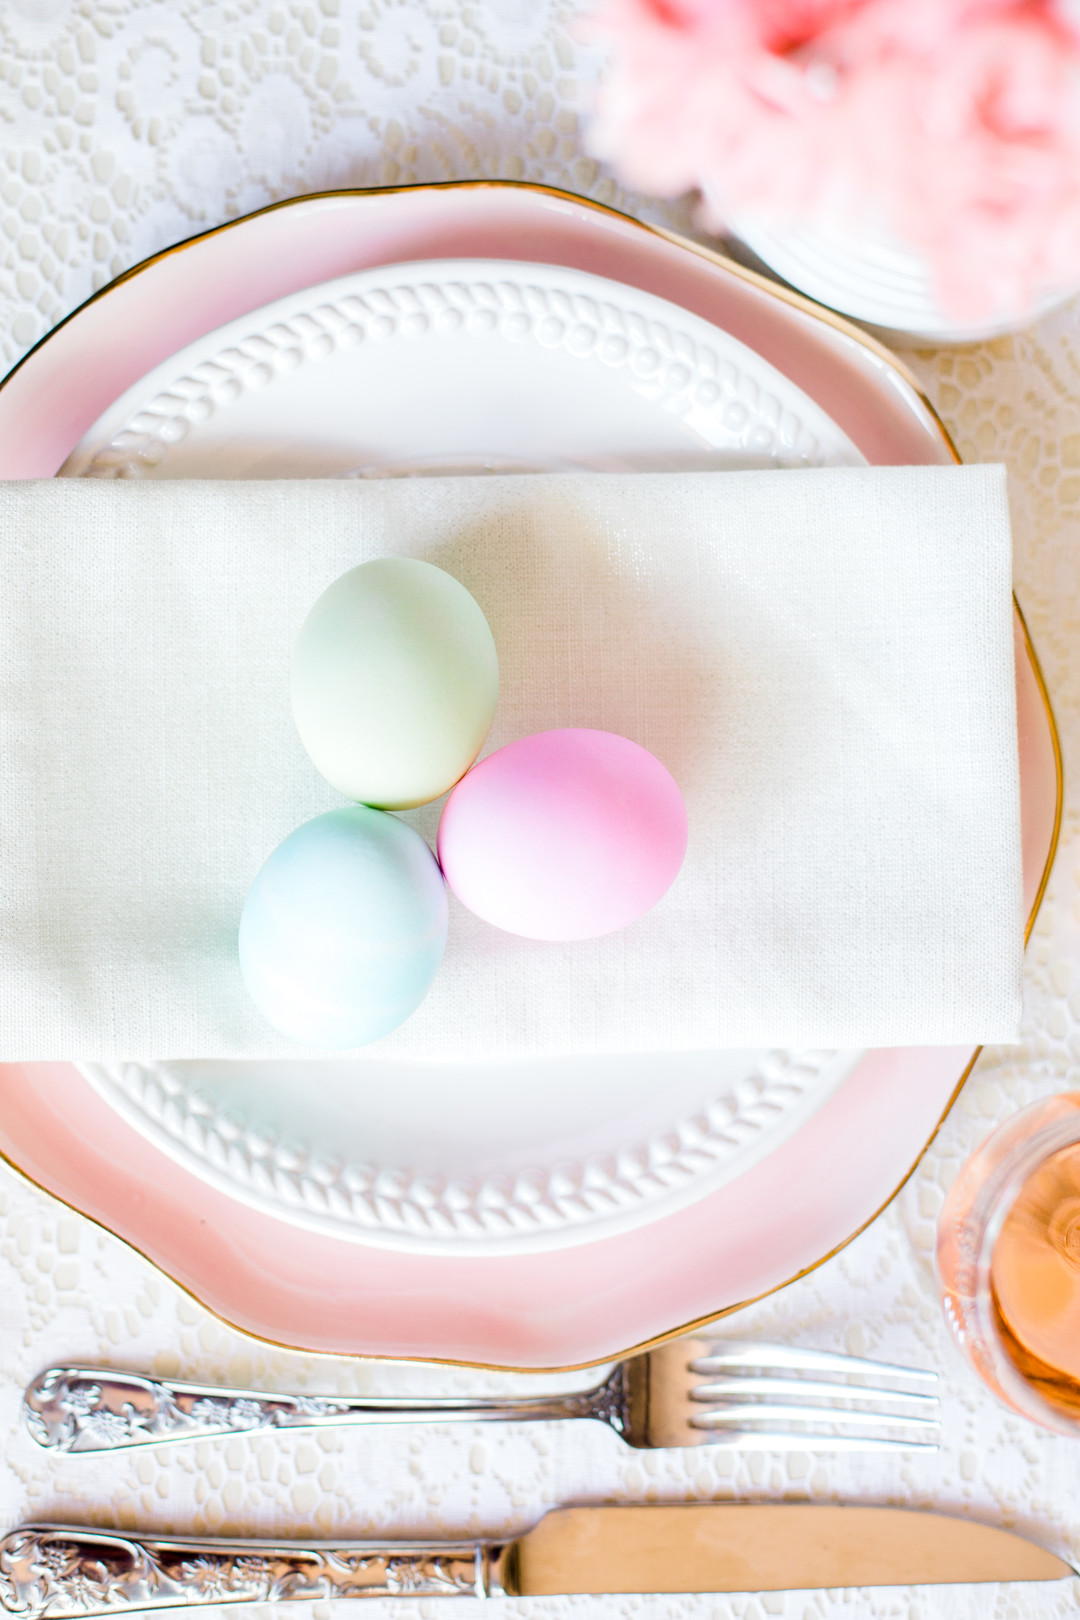 Staal_KristinaStaalPhotography_KristinaStaalPhotographyEasterTablescape201610_big Easy Entertaining: Easter Brunch Inspiration for Two